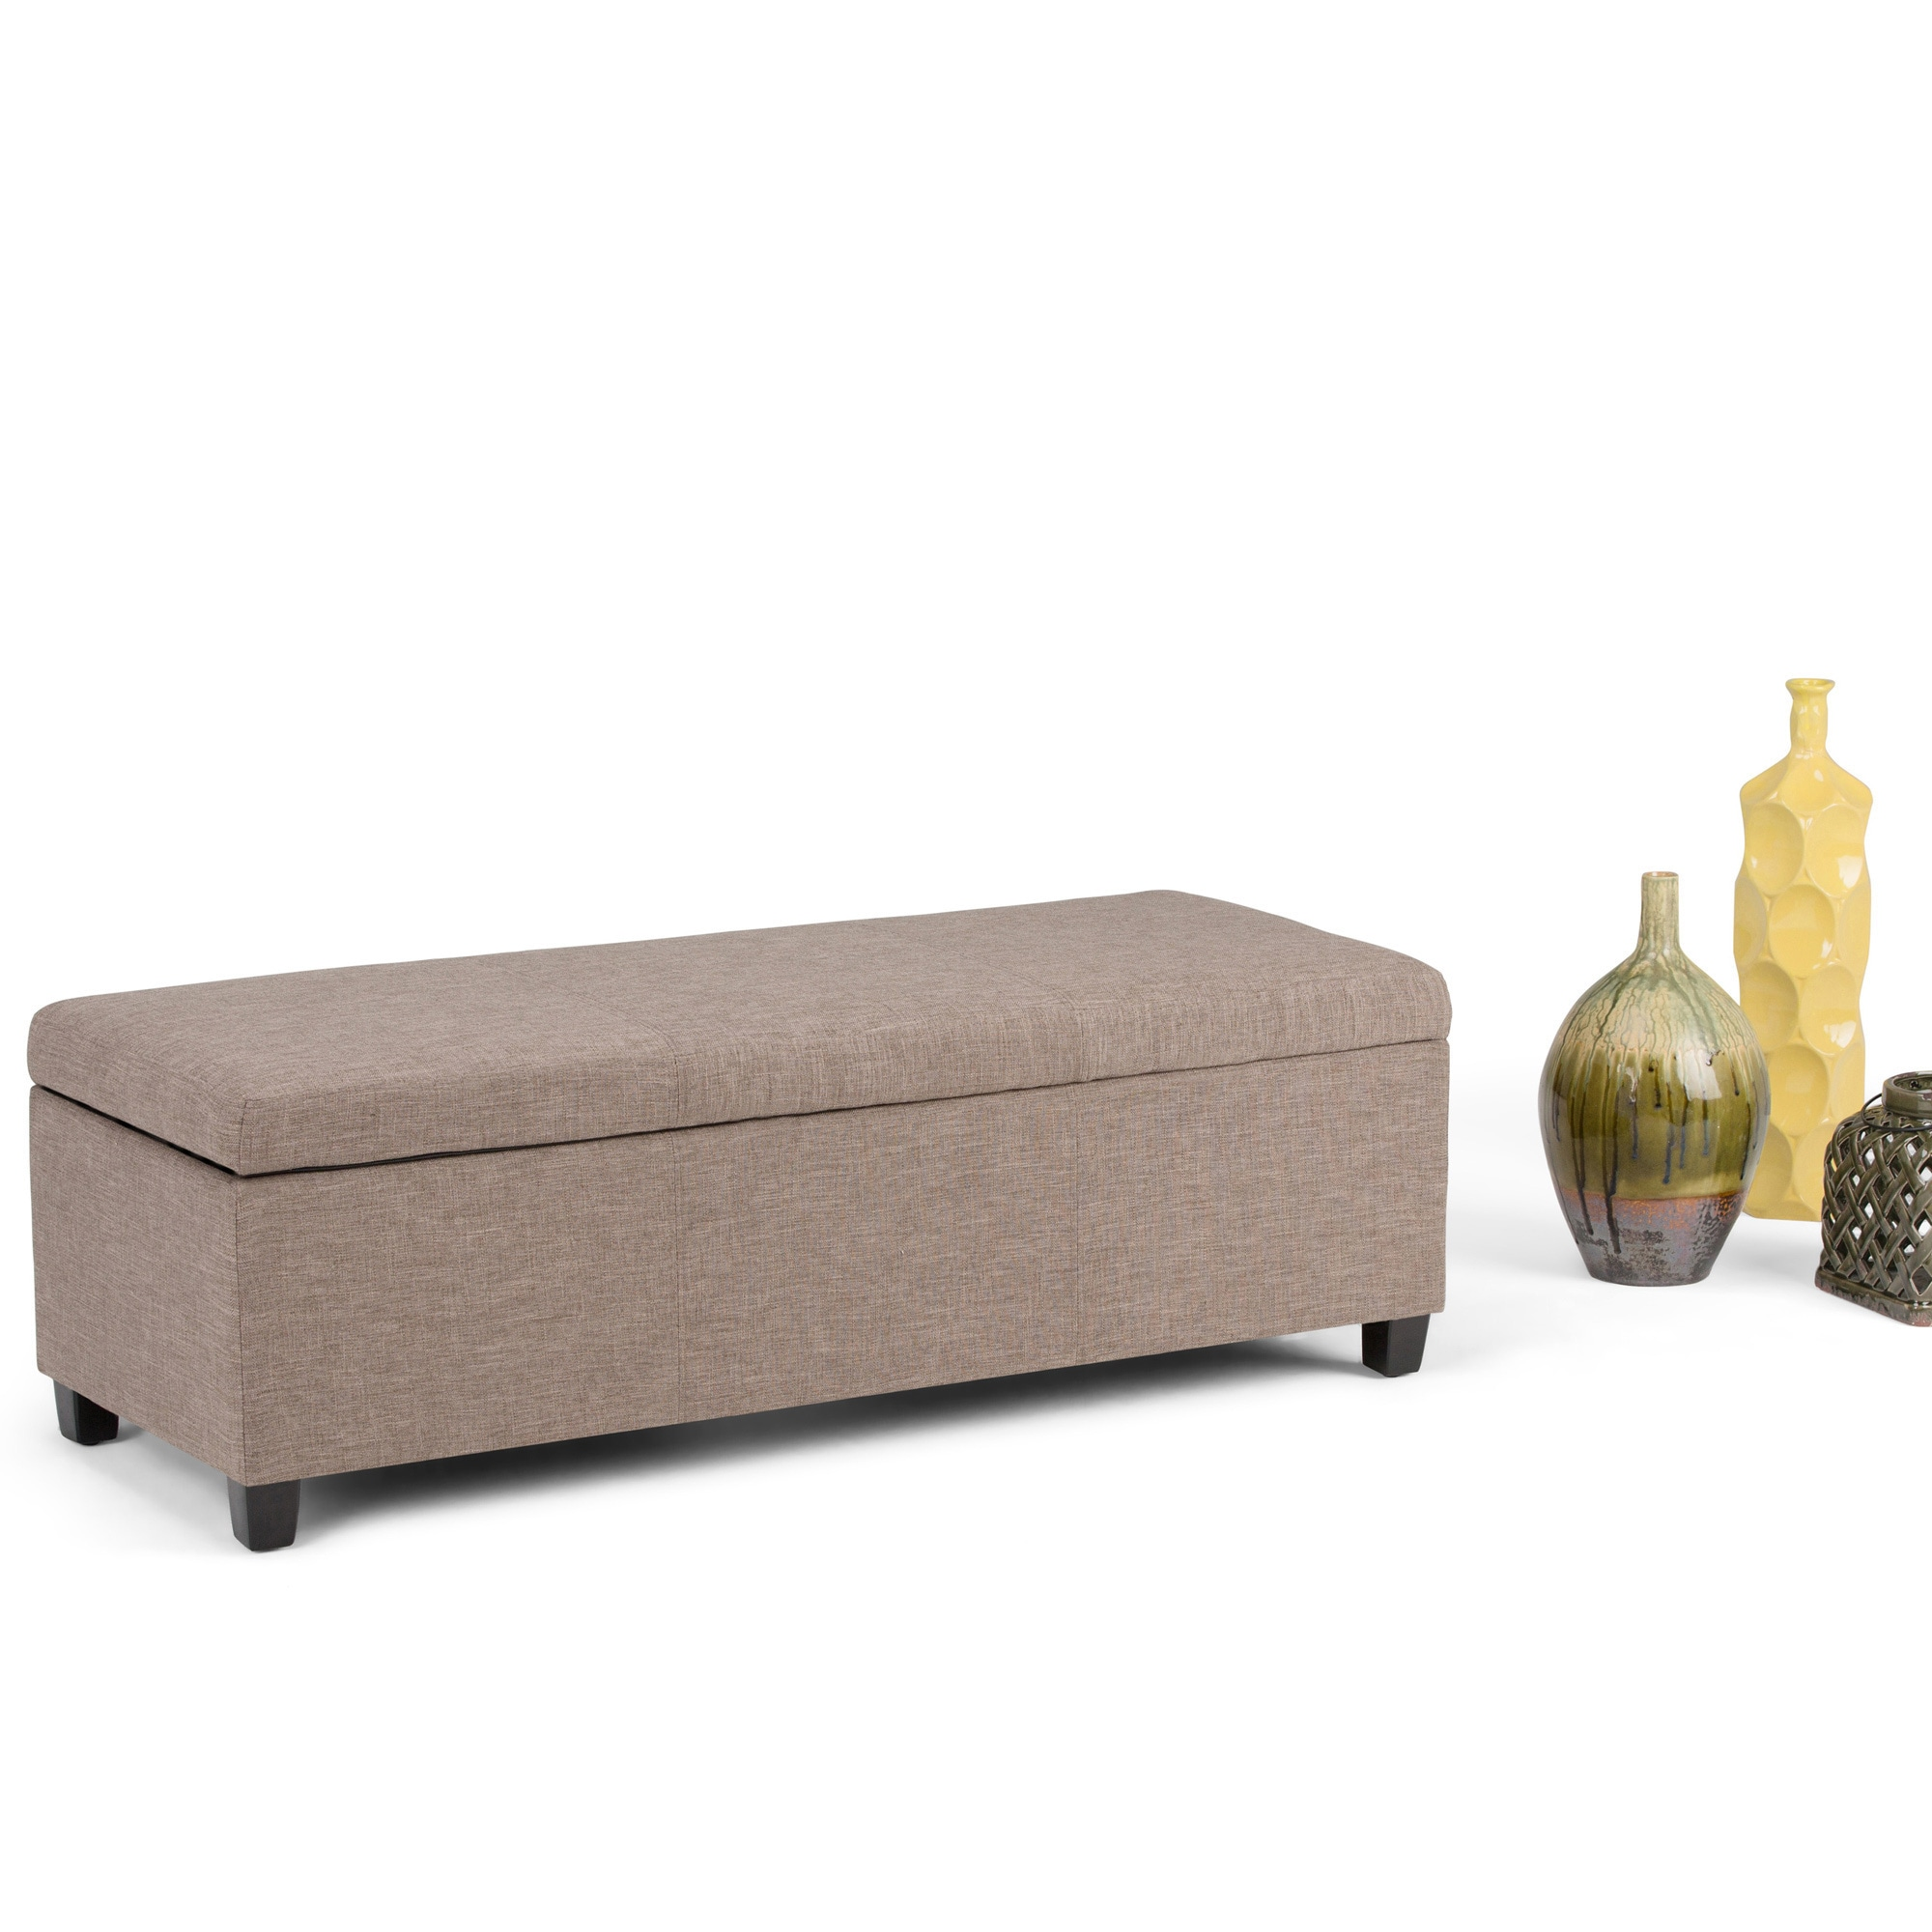 WYNDENHALL Franklin Large Rectangular Storage Ottoman Bench (More options available)